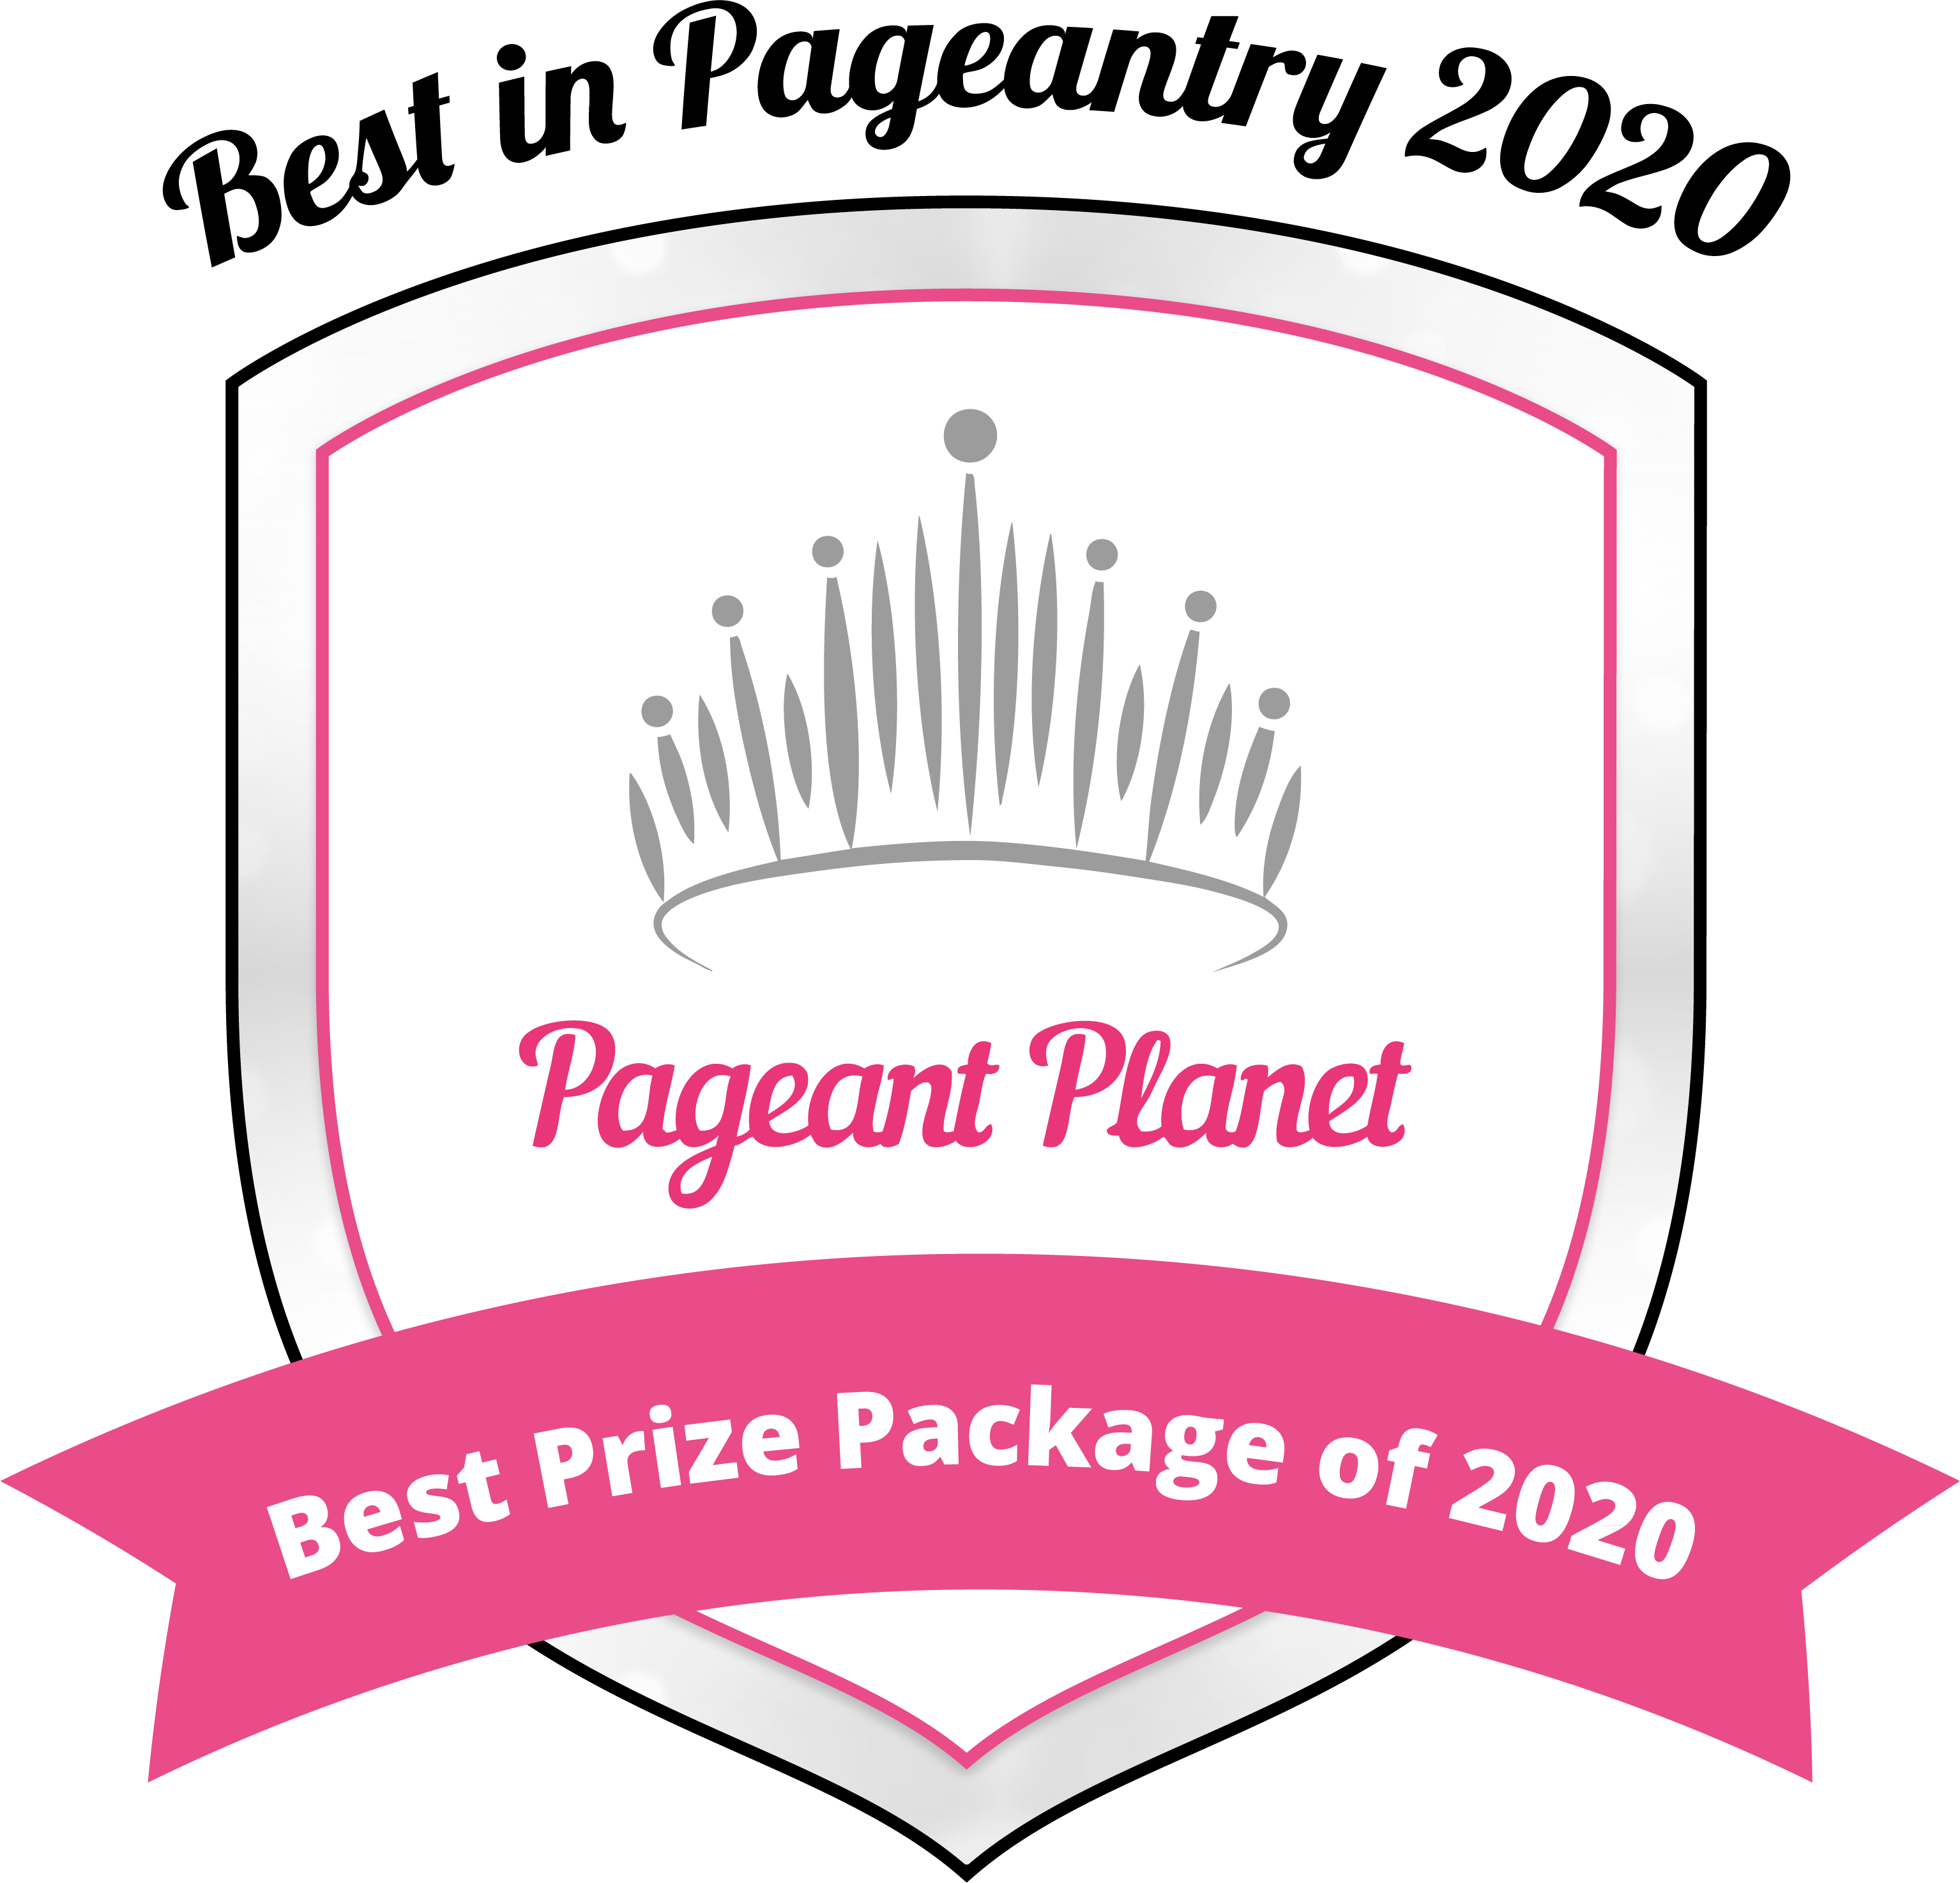 Best Pageant Prize Package of 2020